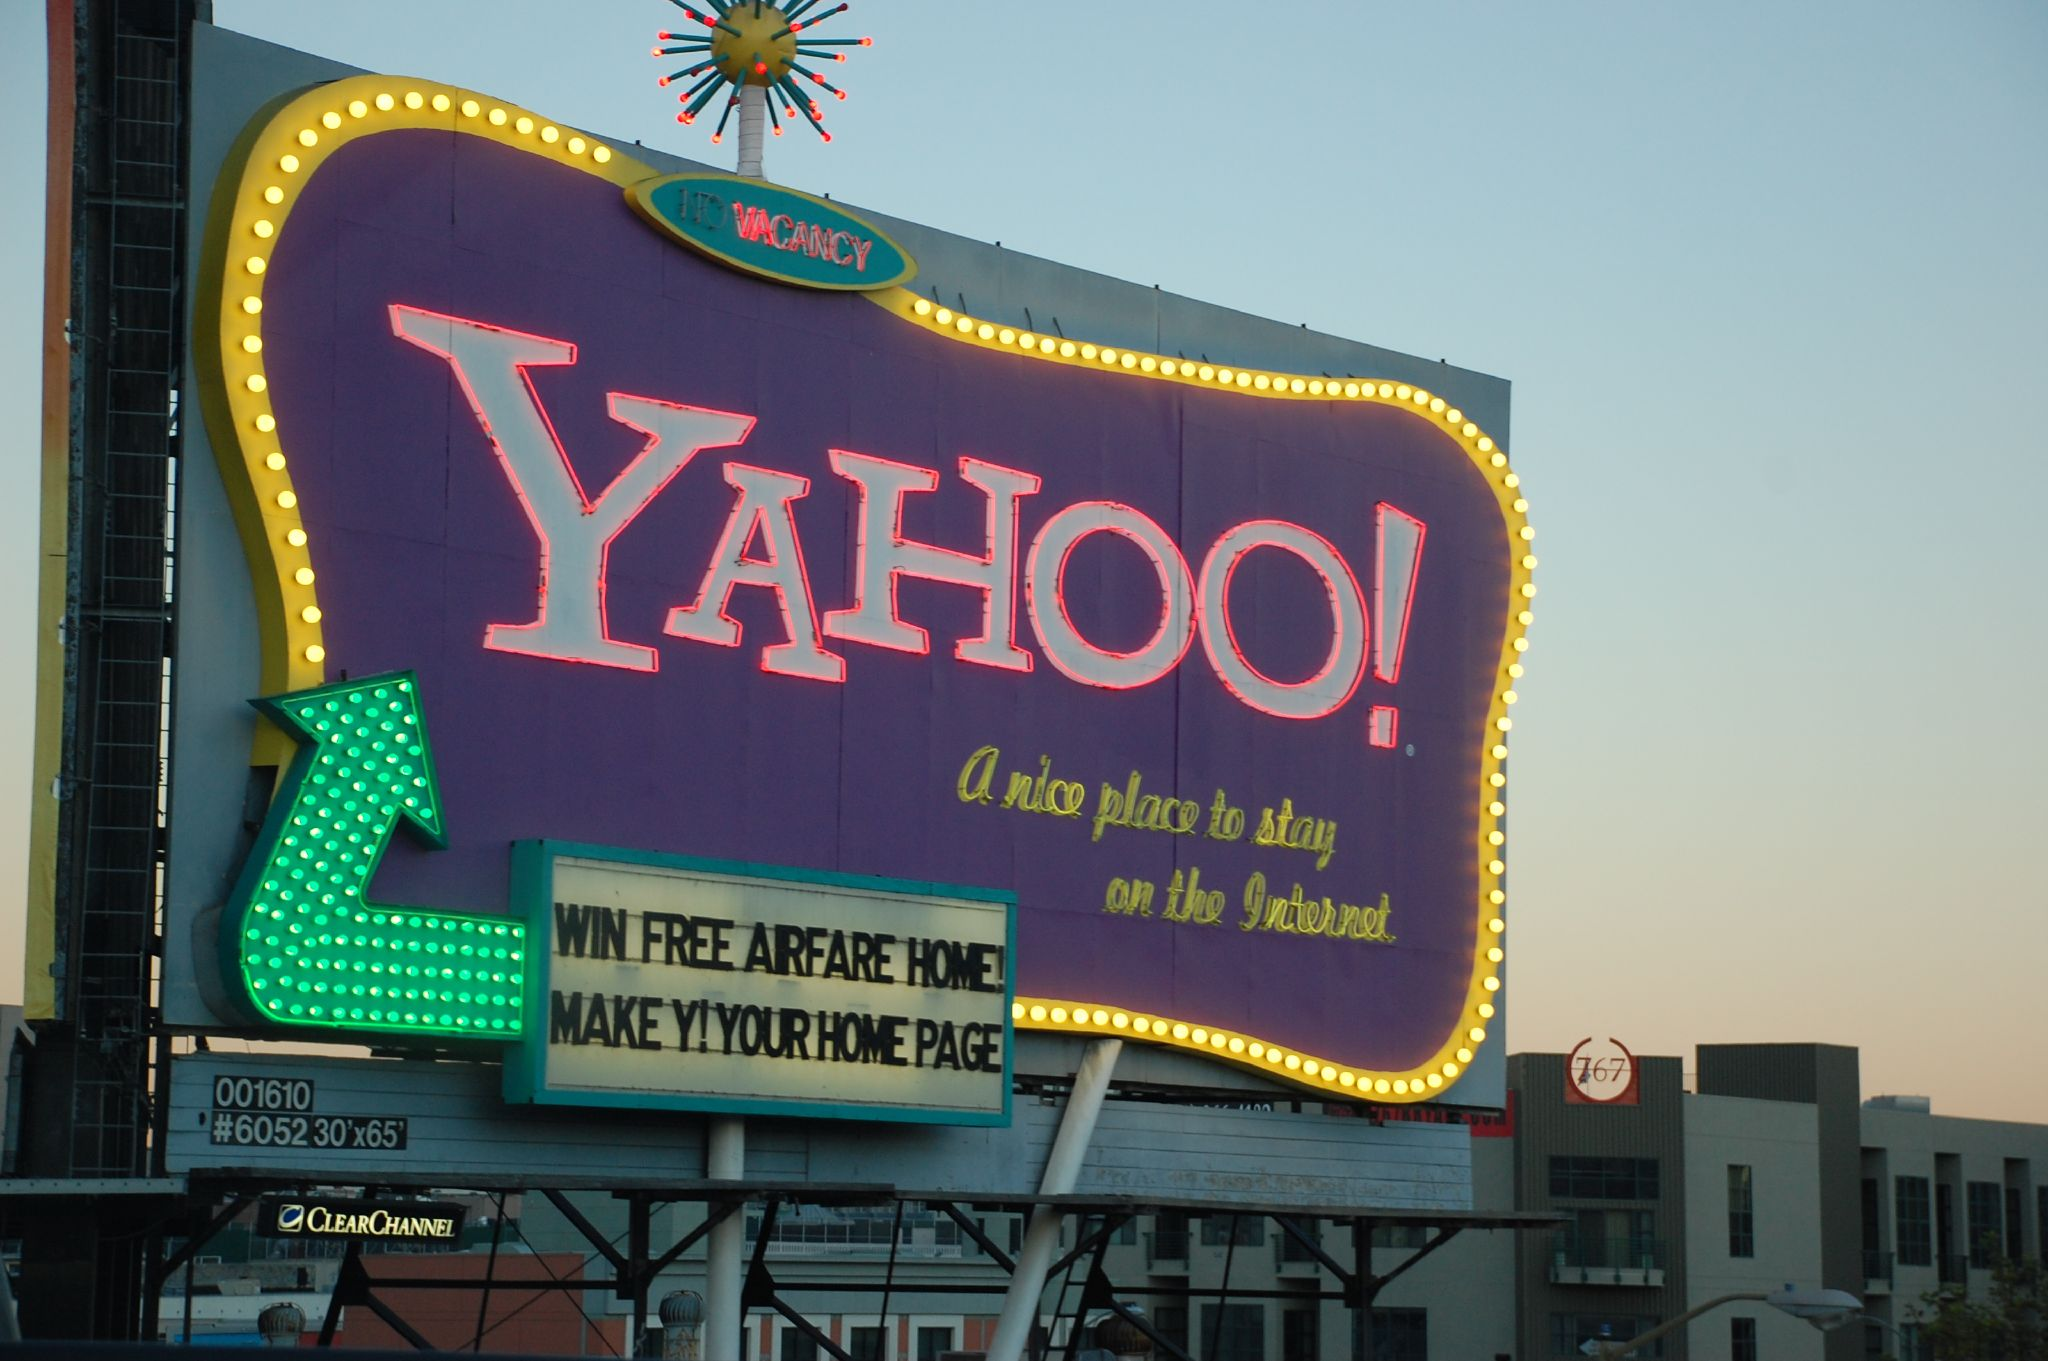 After four years, Google competitor Yahoo will be reclaiming its iconic billboard off the Interstate 80 in San Francisco. Photo by Peanutian.